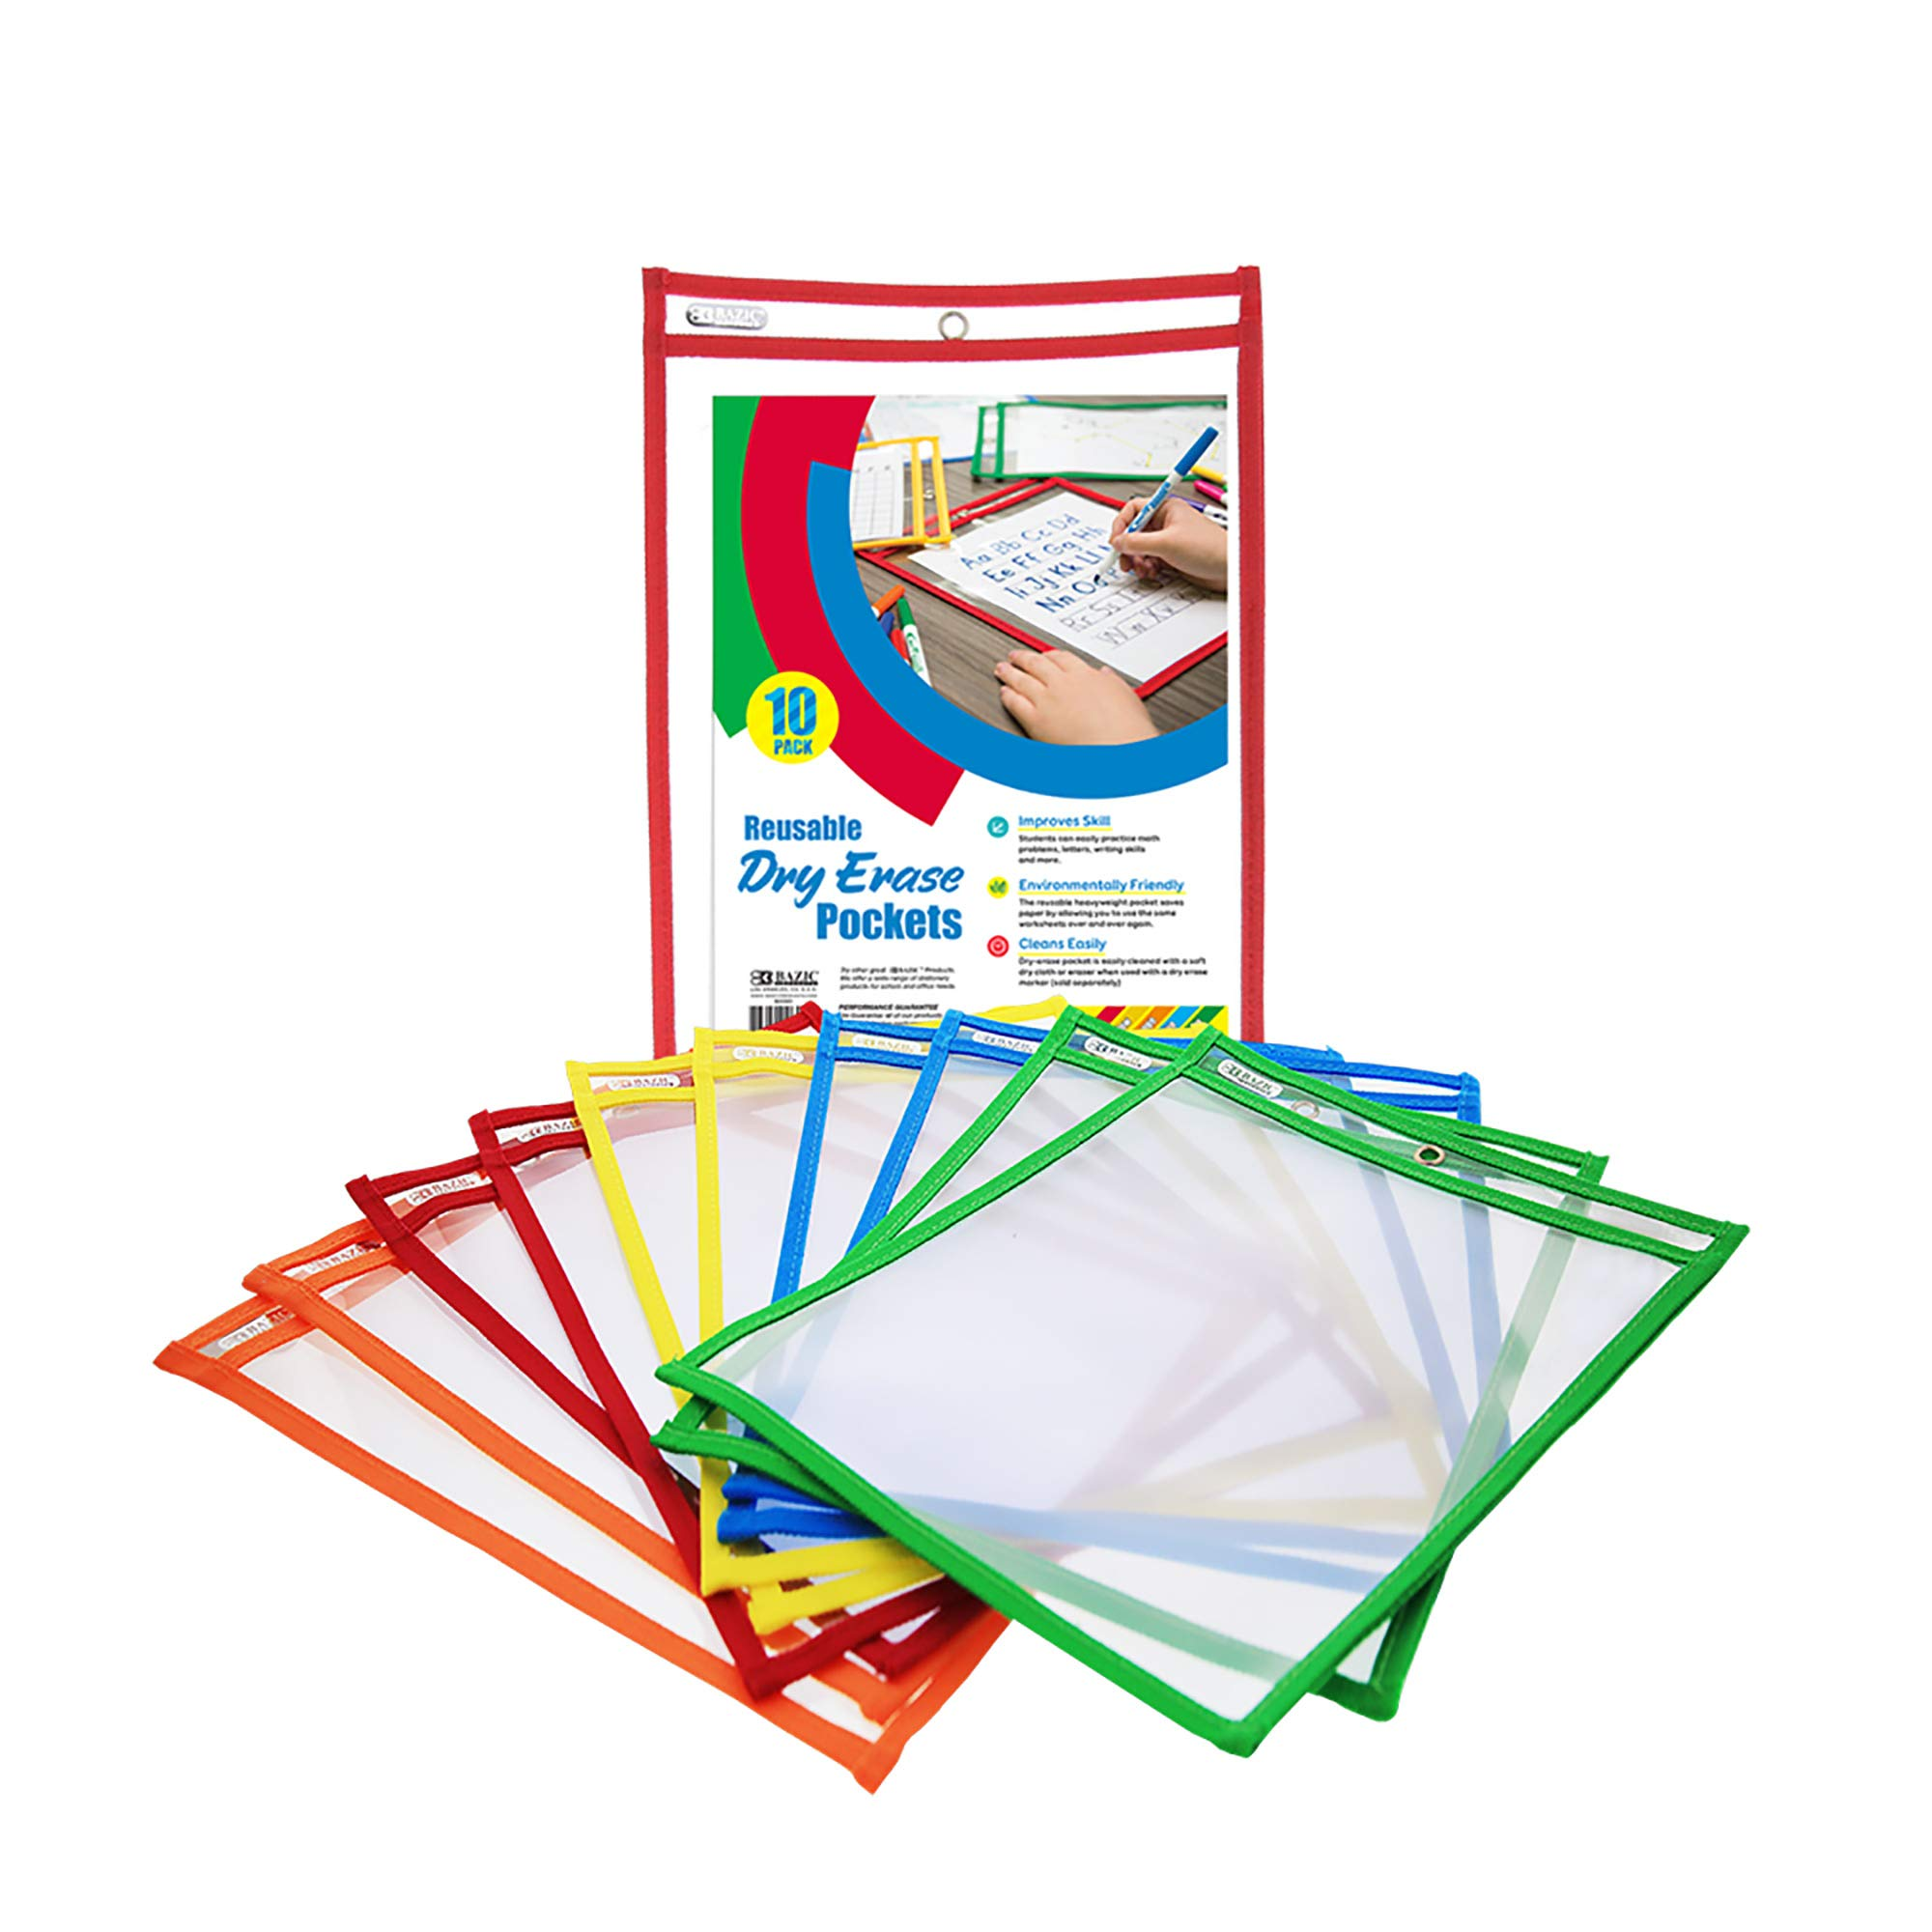 BAZIC Reusable Dry Erase Pockets (10/Pack) (Case of 6) by B BAZIC PRODUCTS